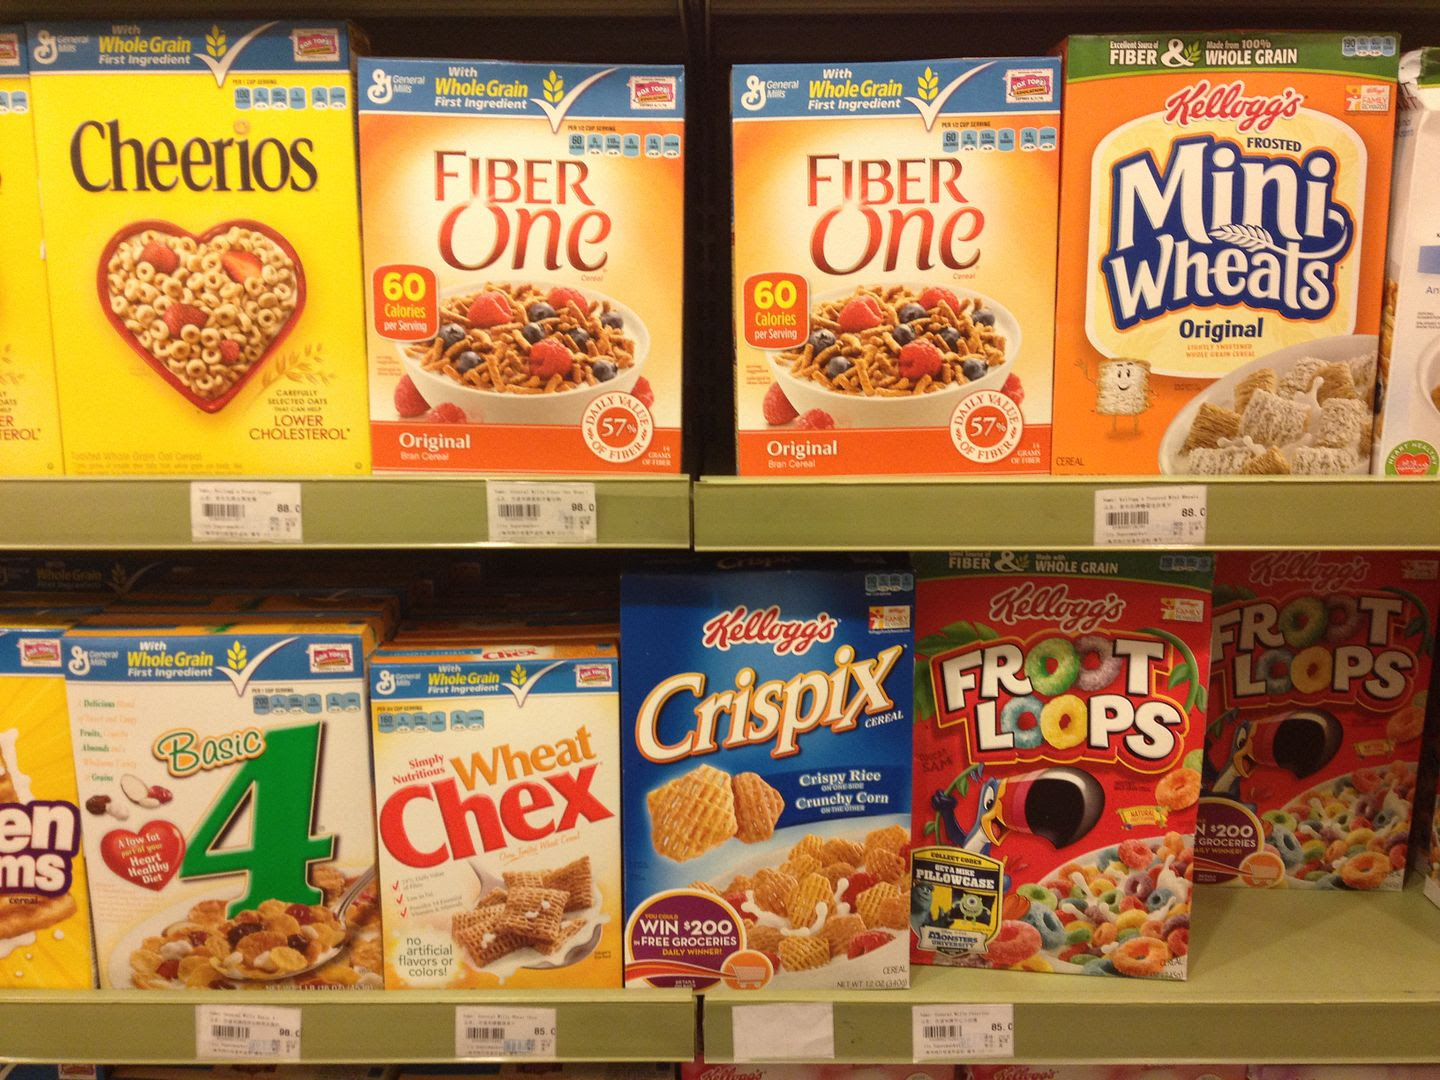 American Breakfast Cereal Starting at $15 photo 2013-09-04173044_zps3dee1098.jpg